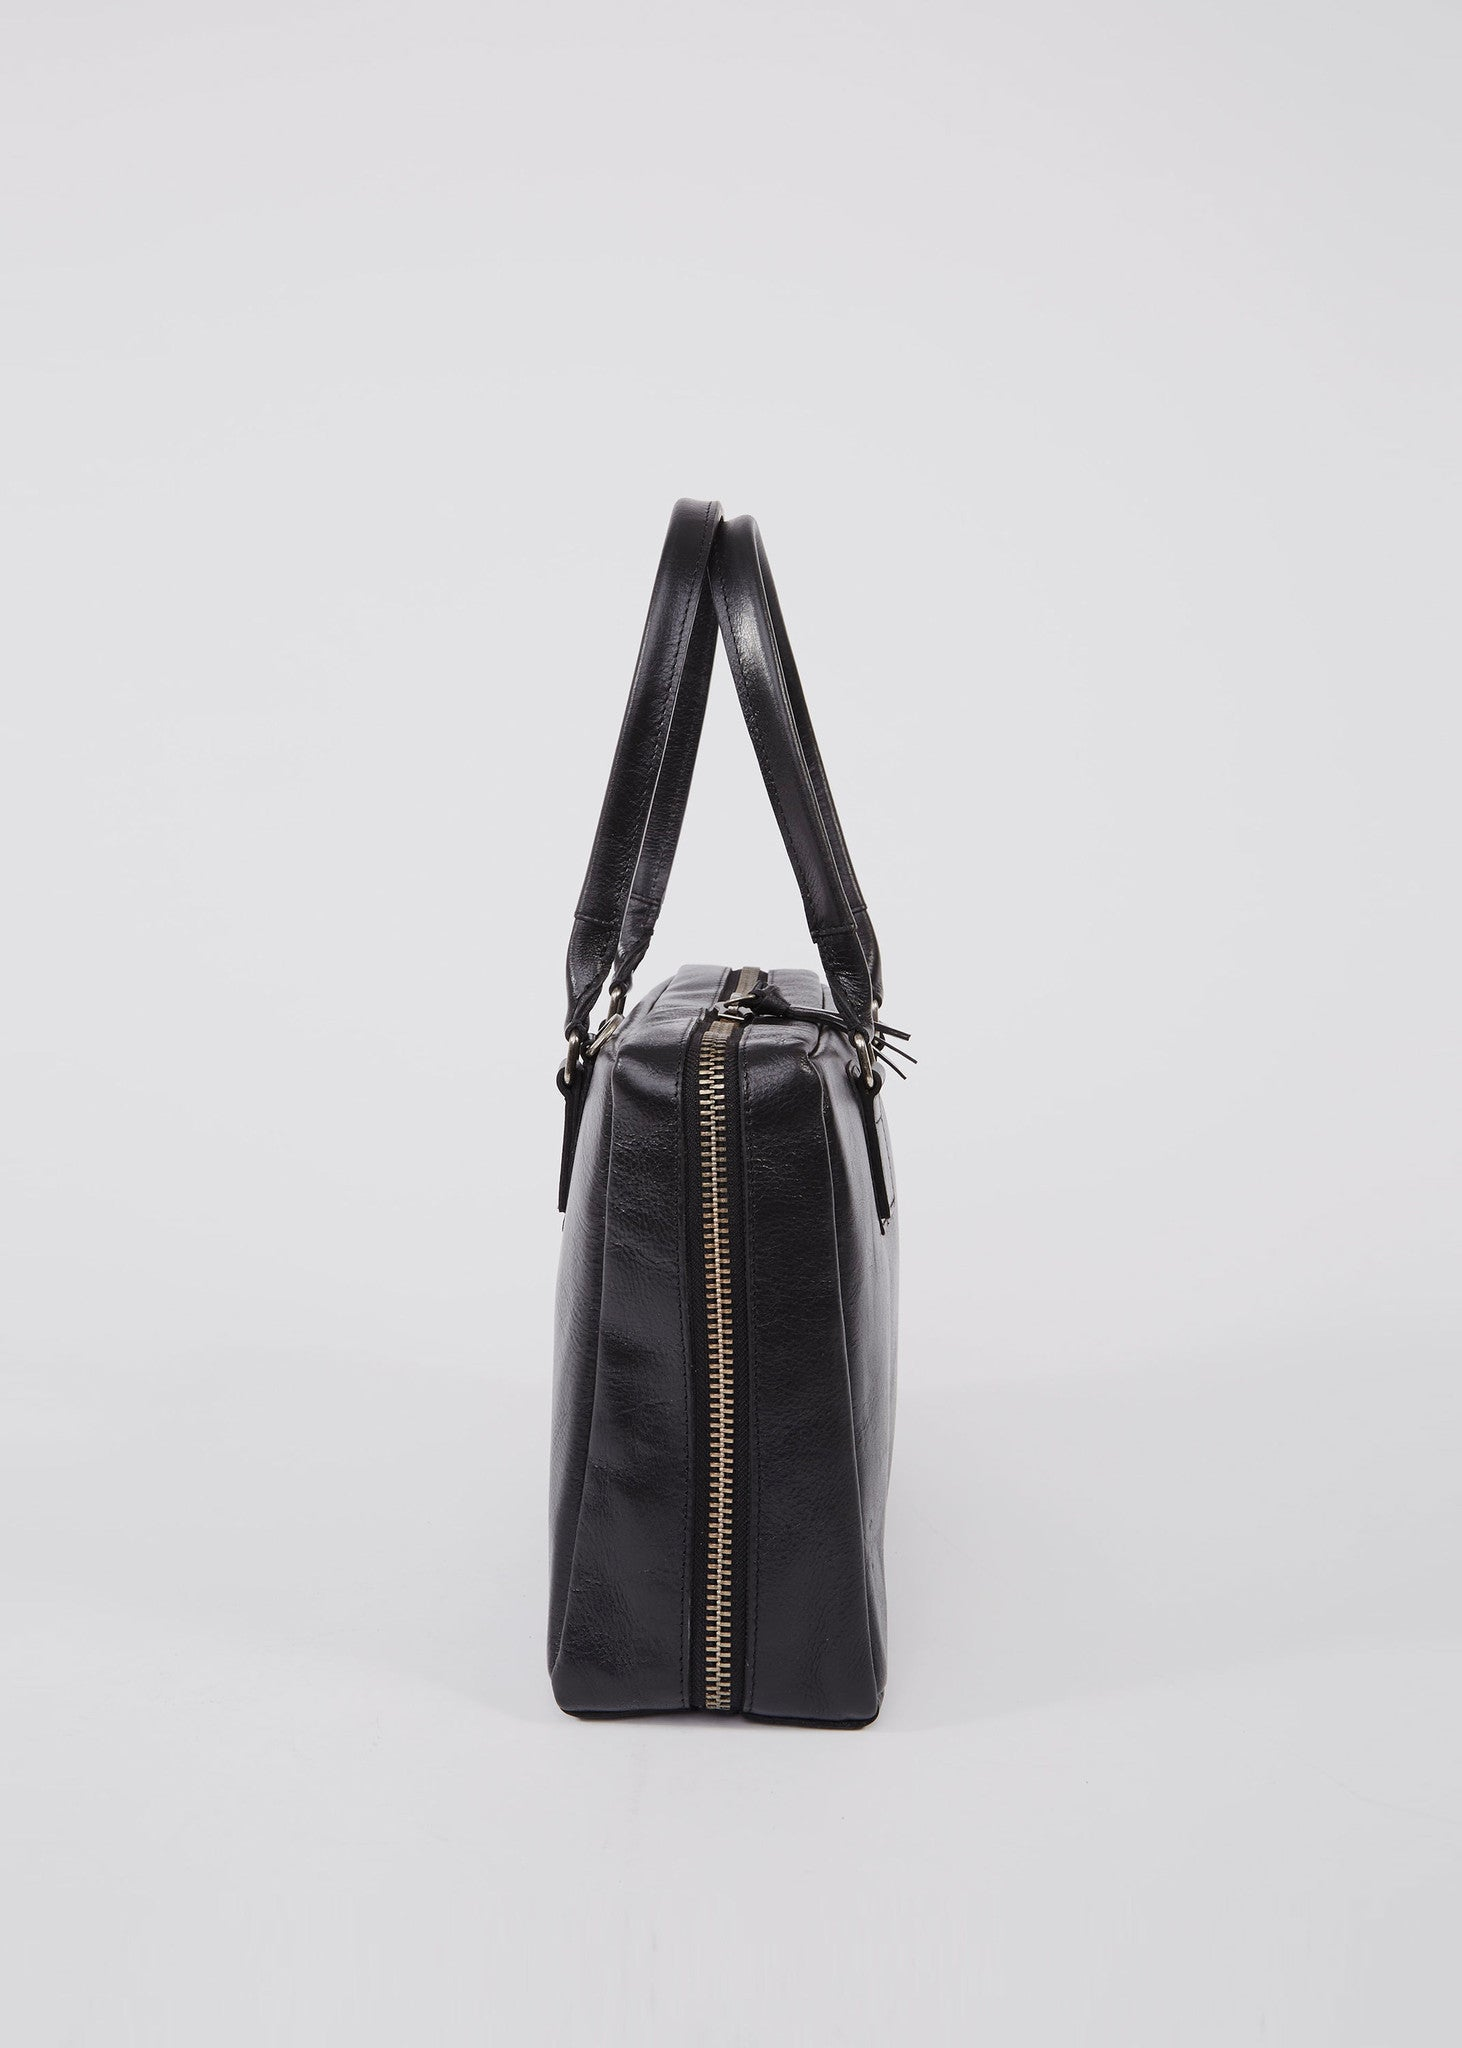 Kitty Hand Bag Black